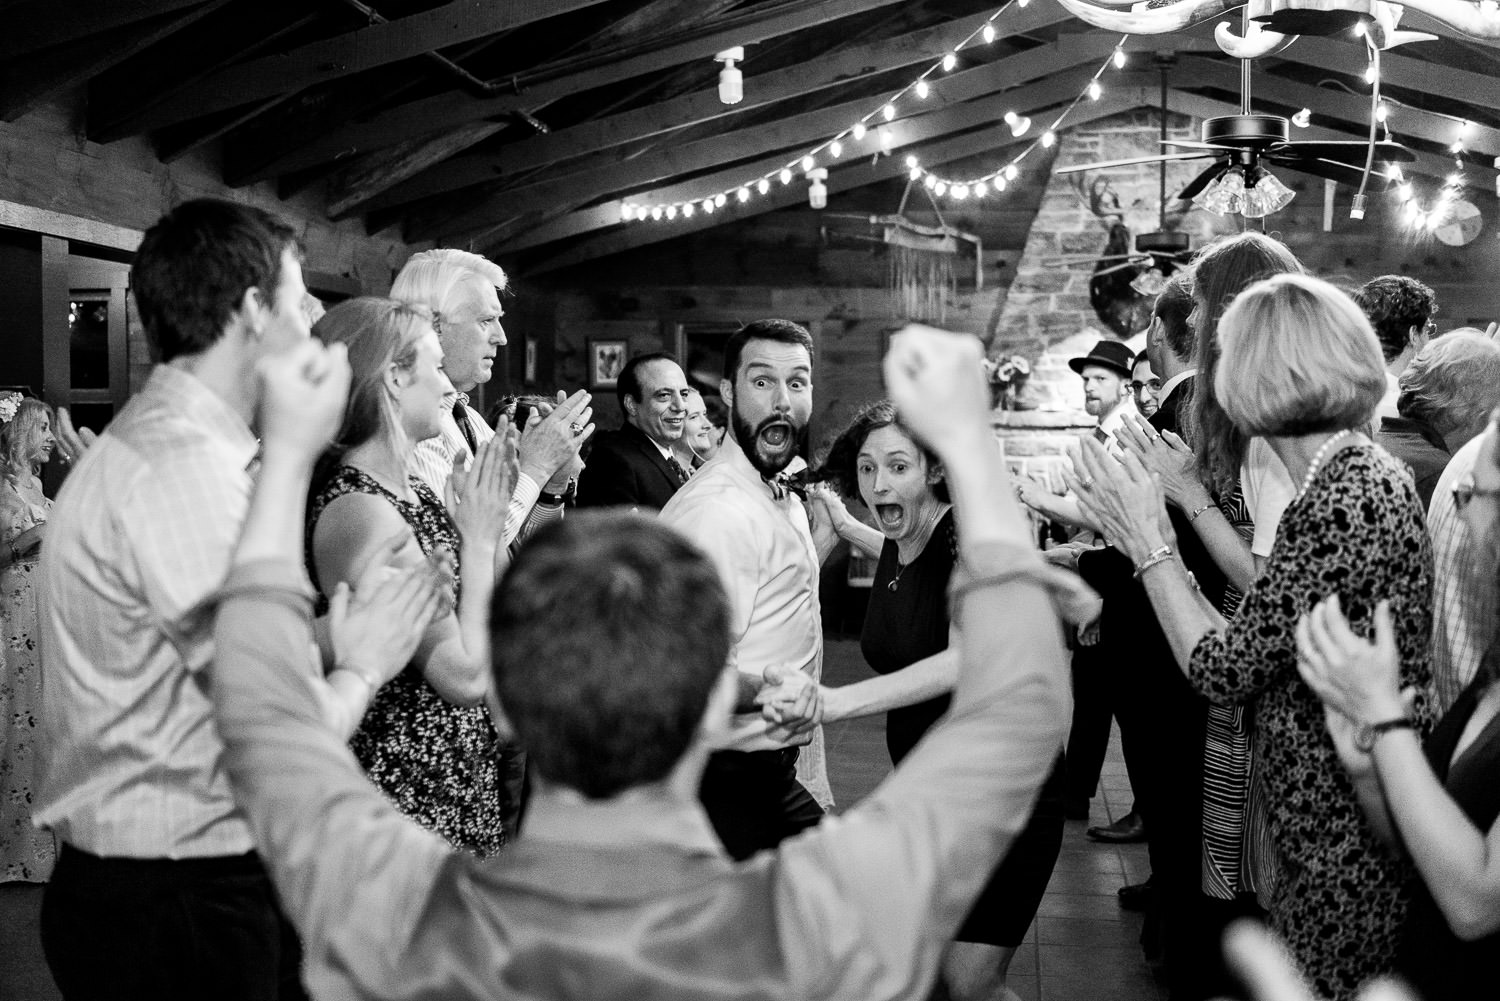 wedding guests participate in contra-dancing and run down line formed by everyone